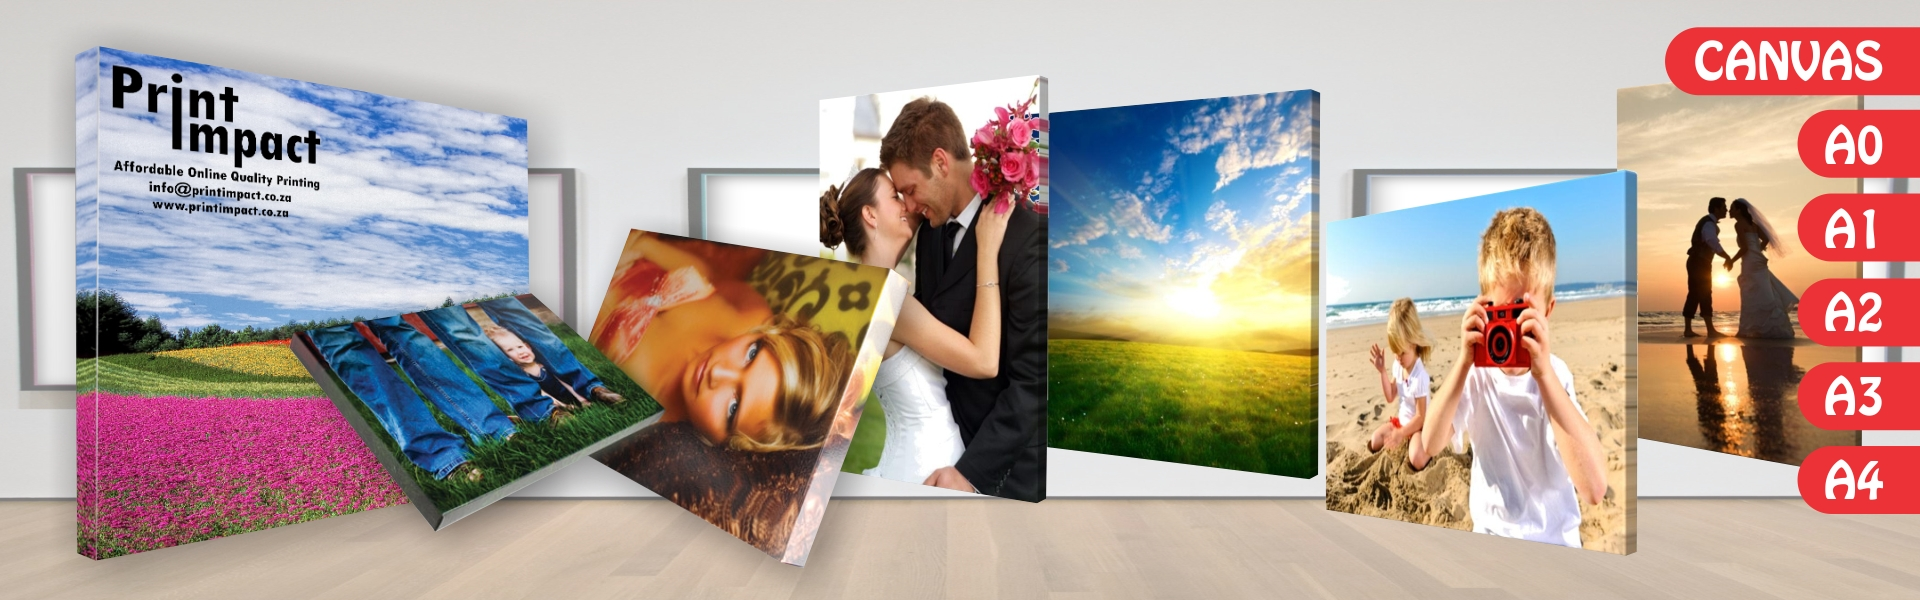 Canvas Printing onto Standard Sizes A0, A1, A2, A3 and Custom Sizes done professionally